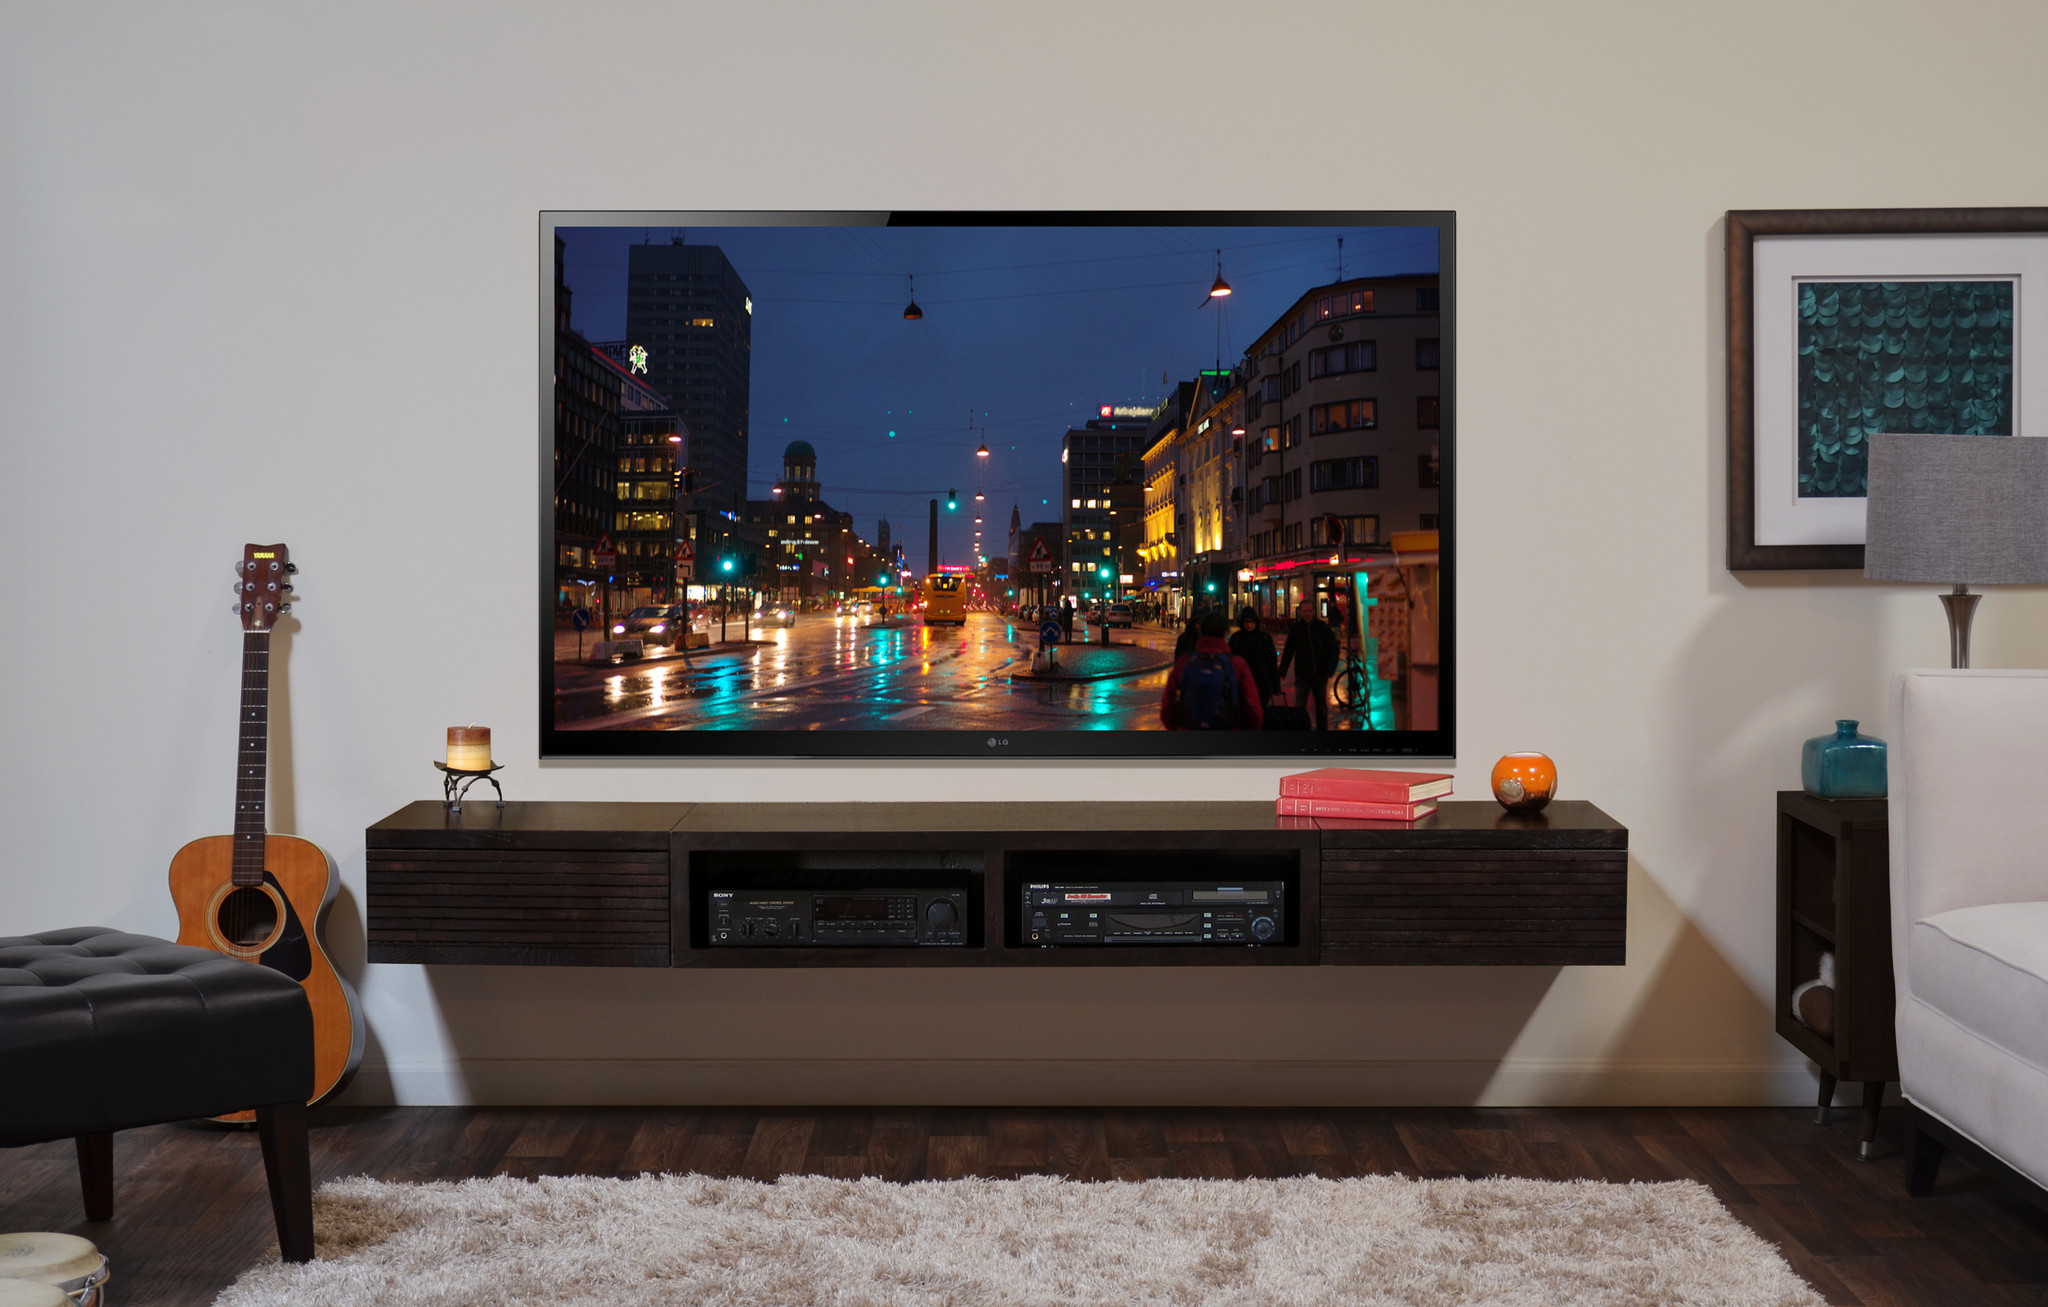 Wide Screen TV and Contemporary Wall Mount TV Stand Used inside Comfy Living Room with White Sofa